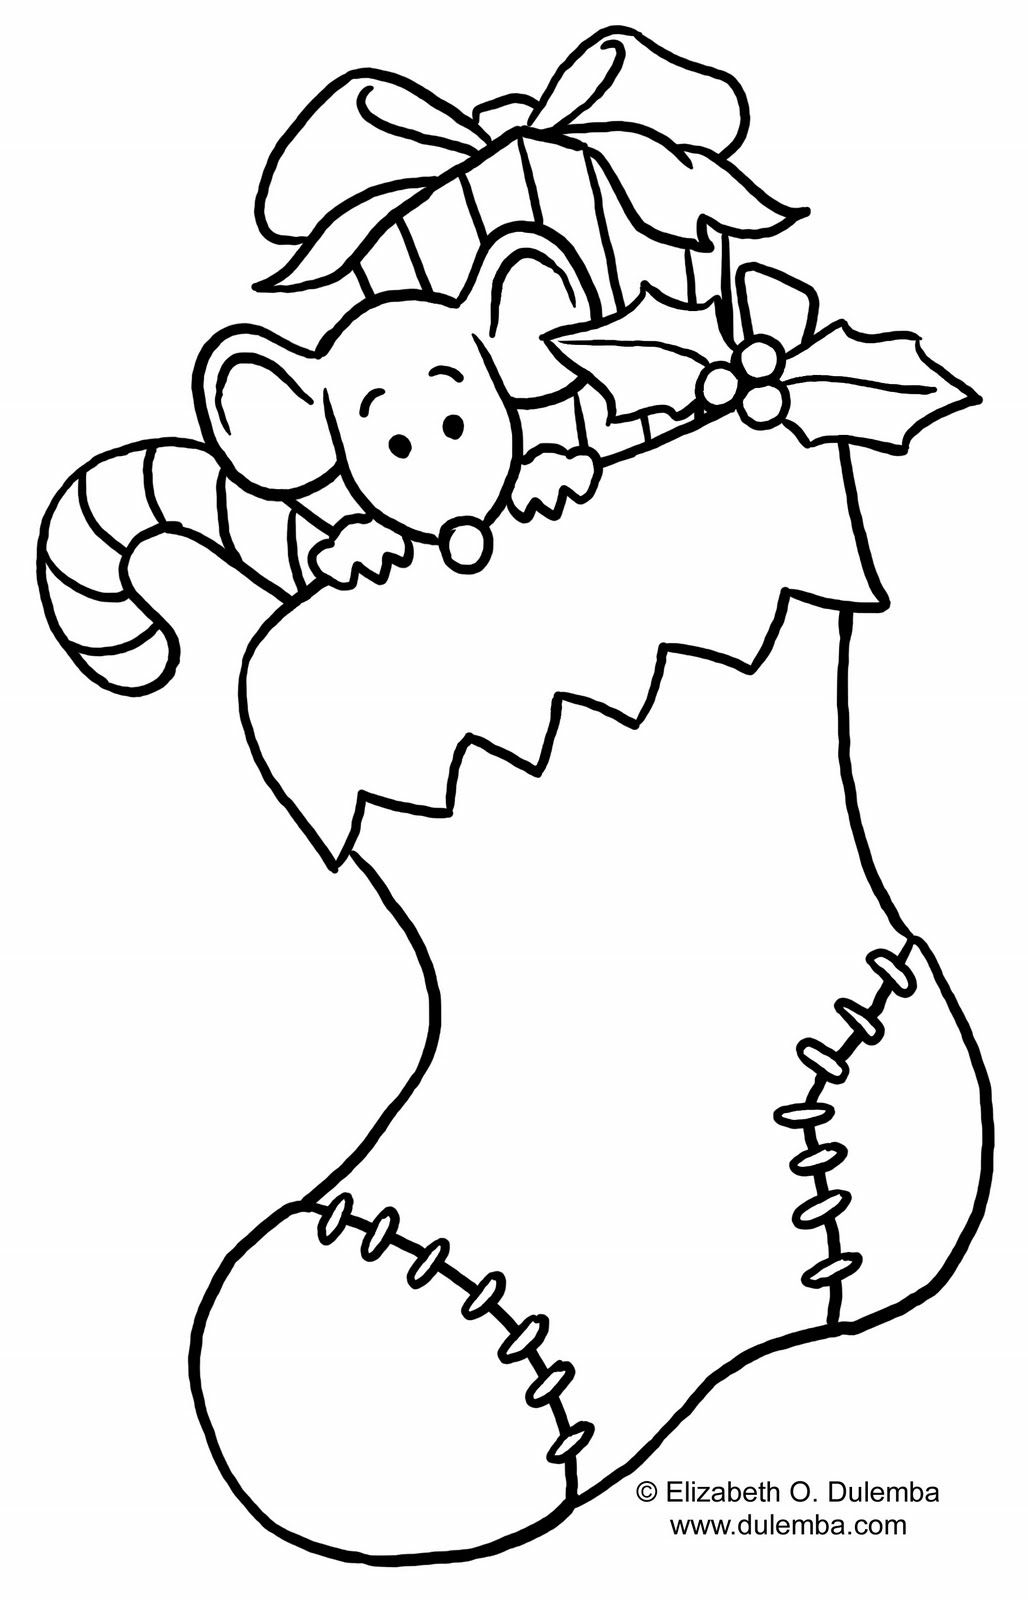 Disney Coloring Pages Christmas Stocking Coloring Page Free Christmas Coloring Pages Printable Christmas Coloring Pages Christmas Coloring Sheets